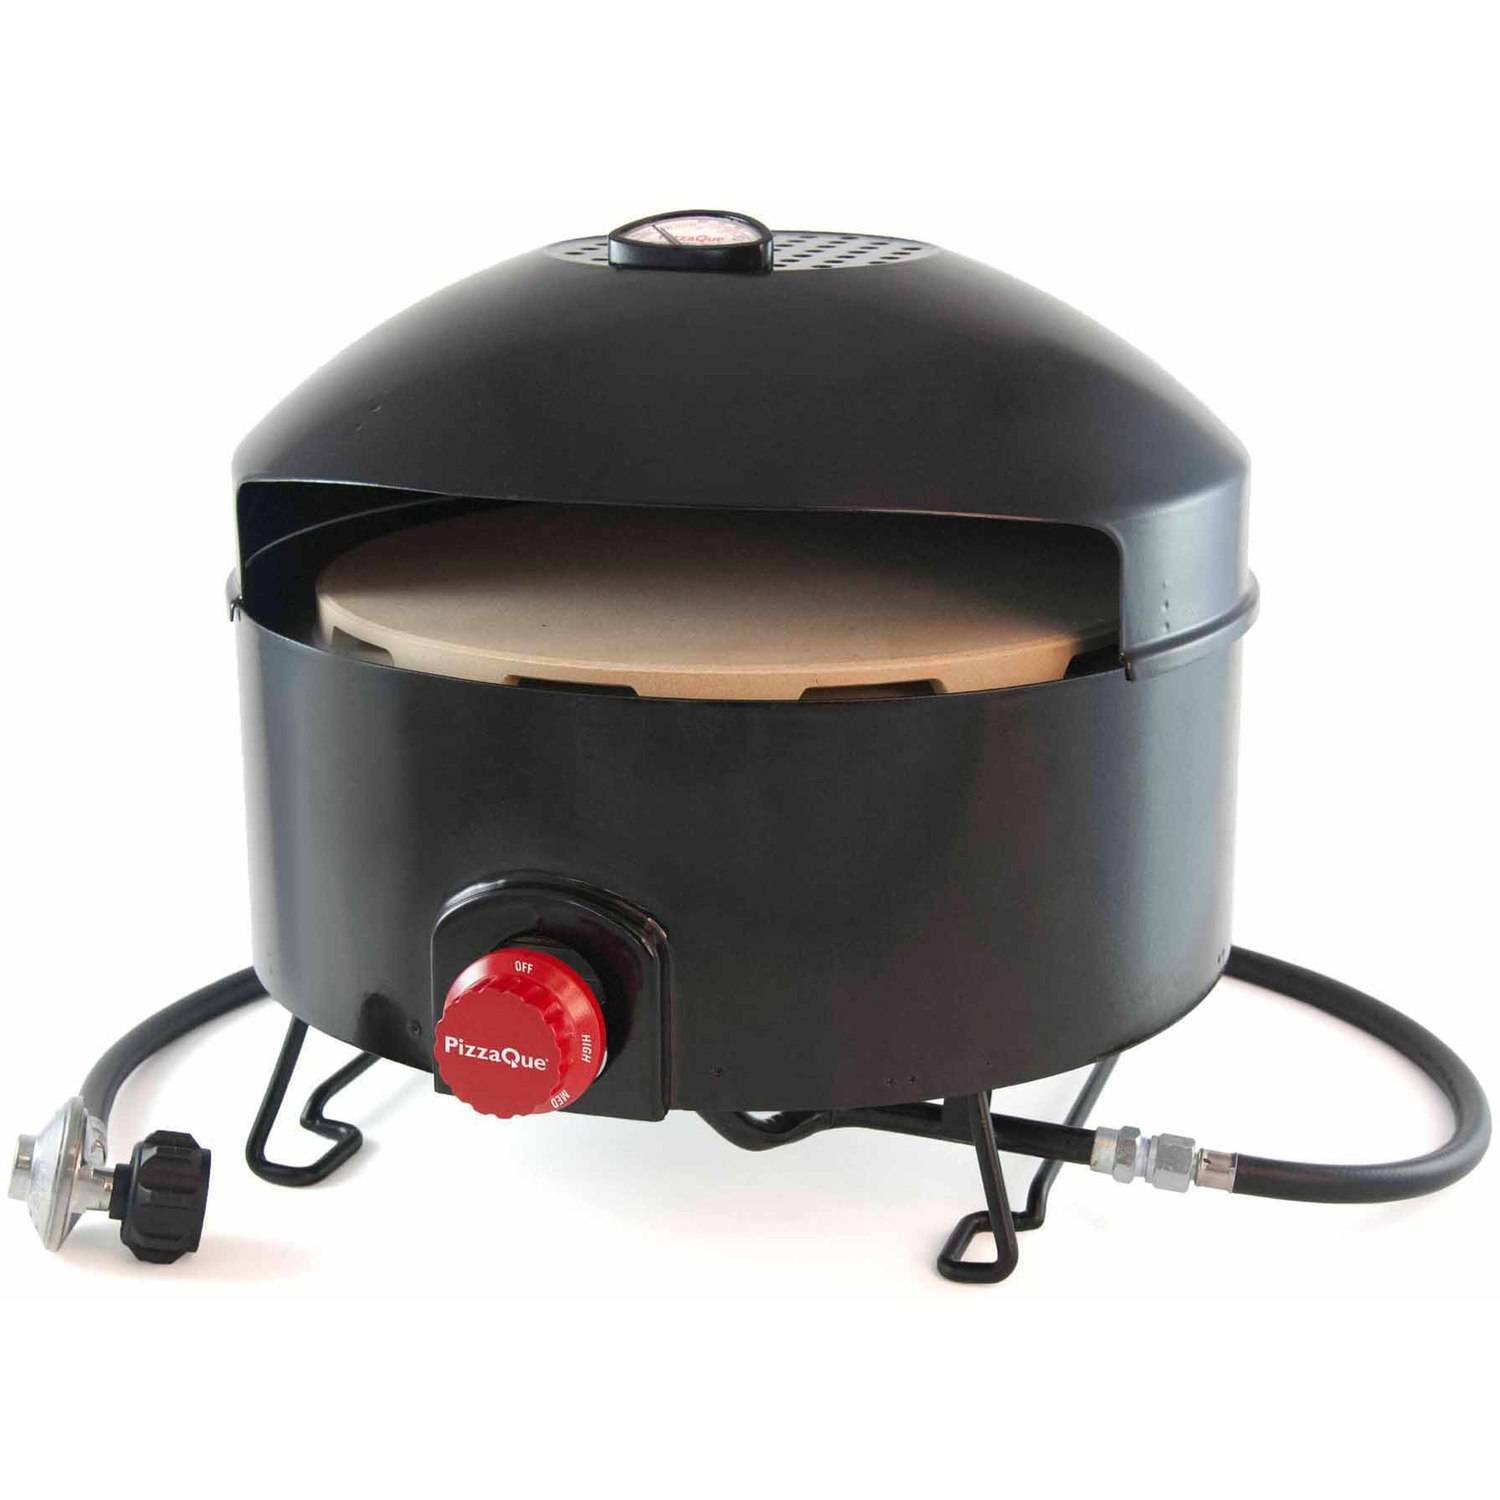 Pizzacraft PizzaQue Outdoor Pizza Oven, PC6500